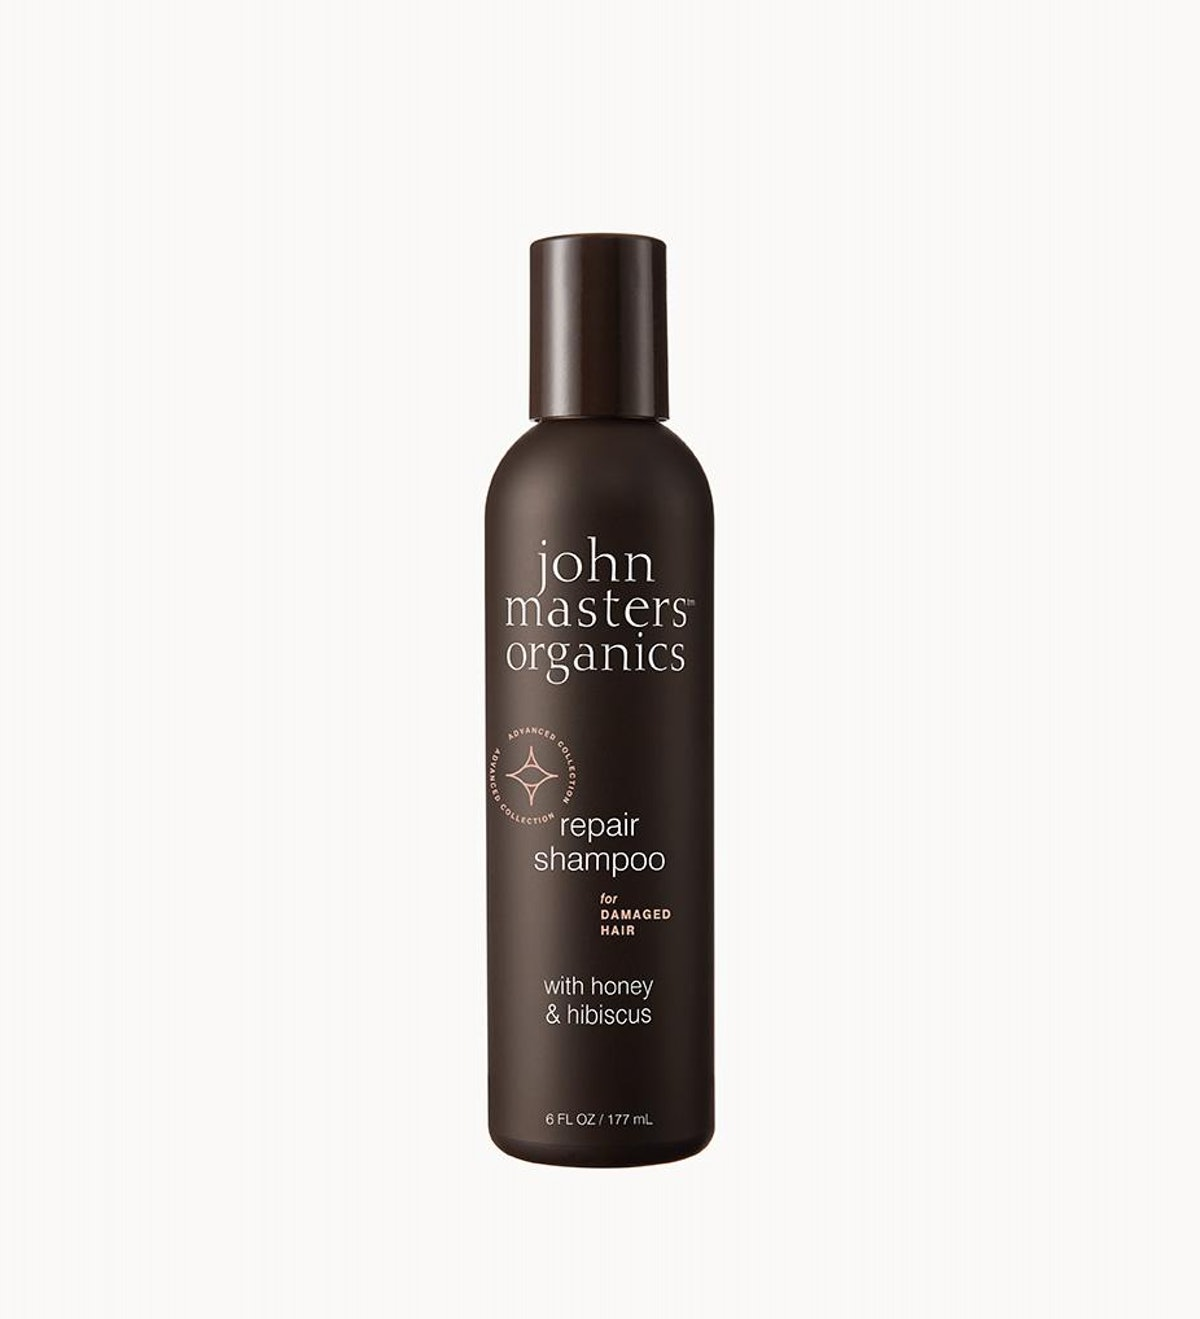 Repair Shampoo for Damaged Hair with Honey & Hibiscus